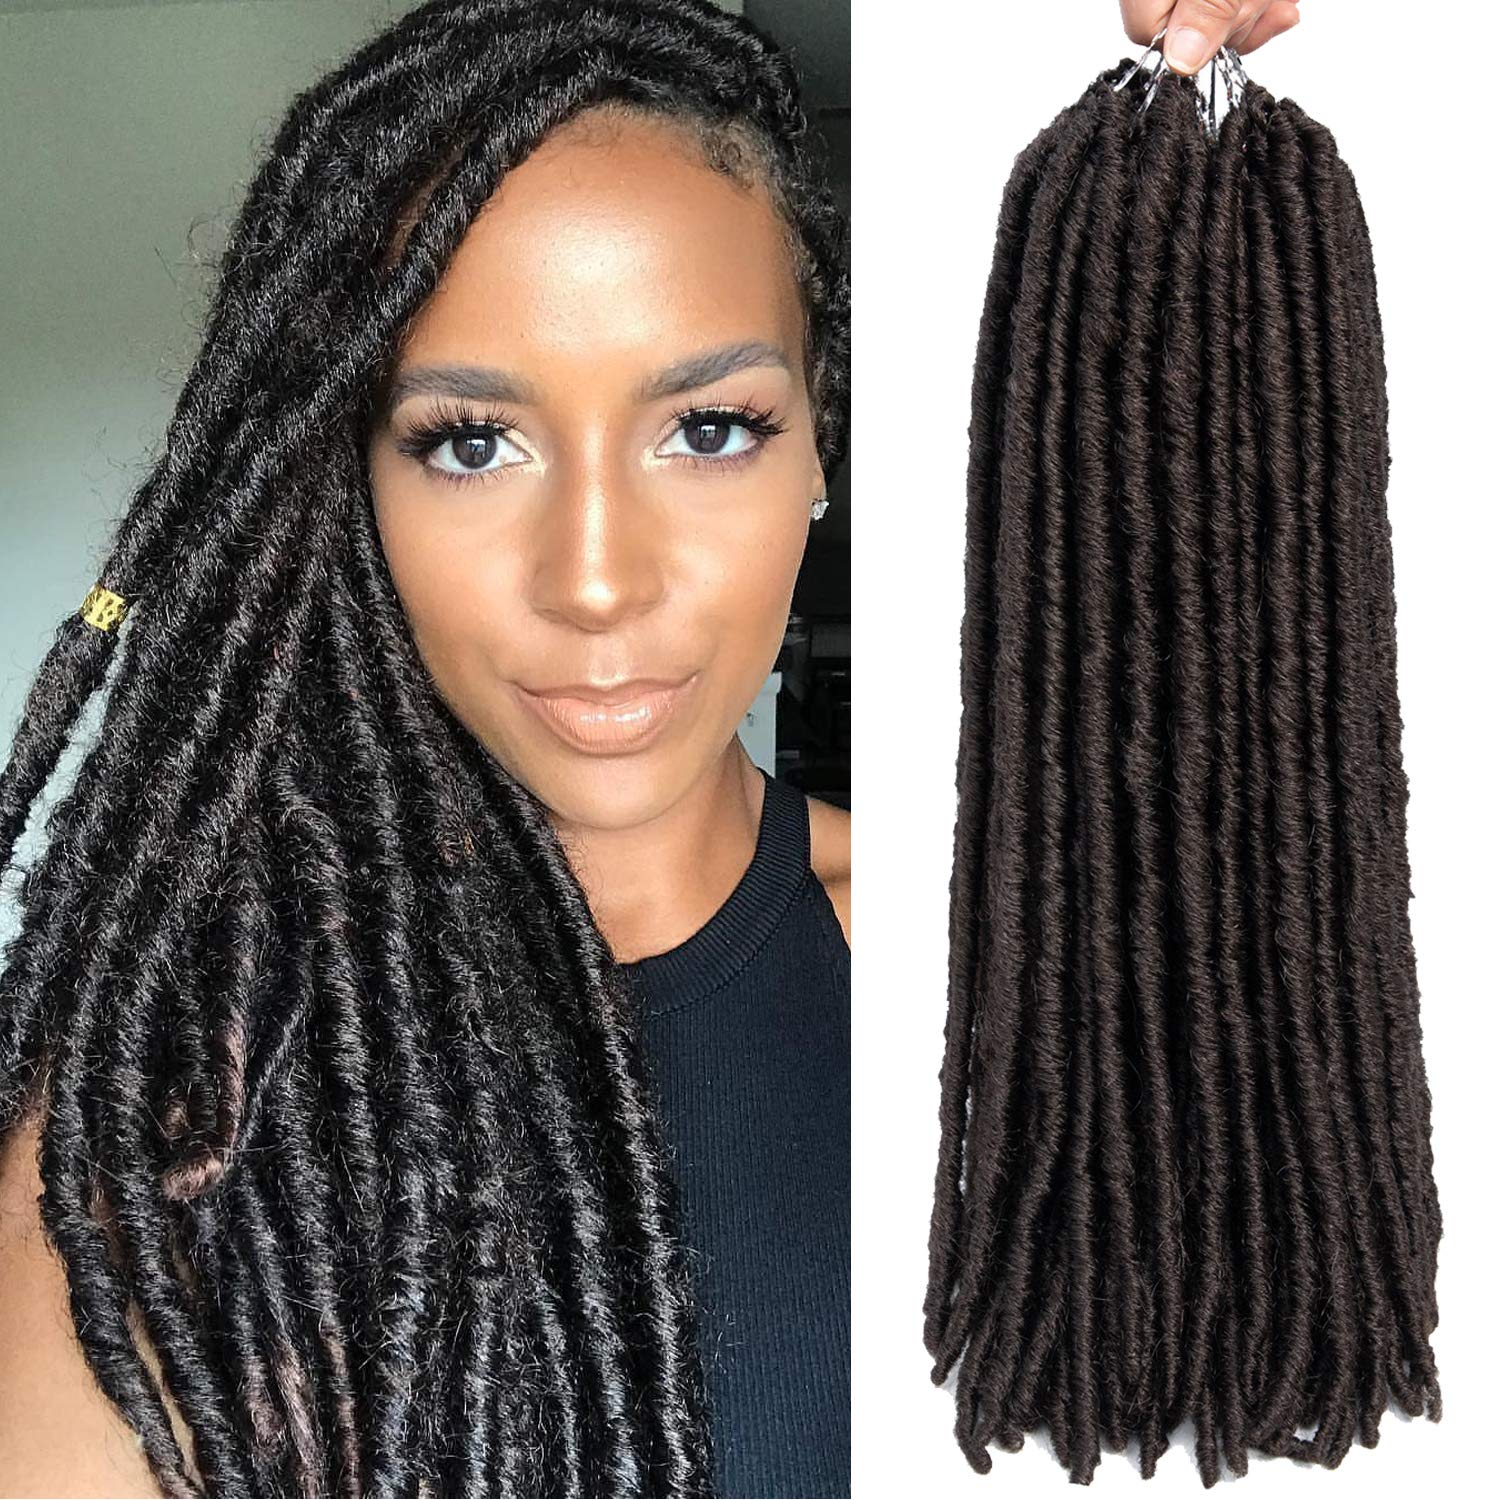 Amazoncom 6 Packslot Dreadlocks Crochet Braids Soft Faux Locs